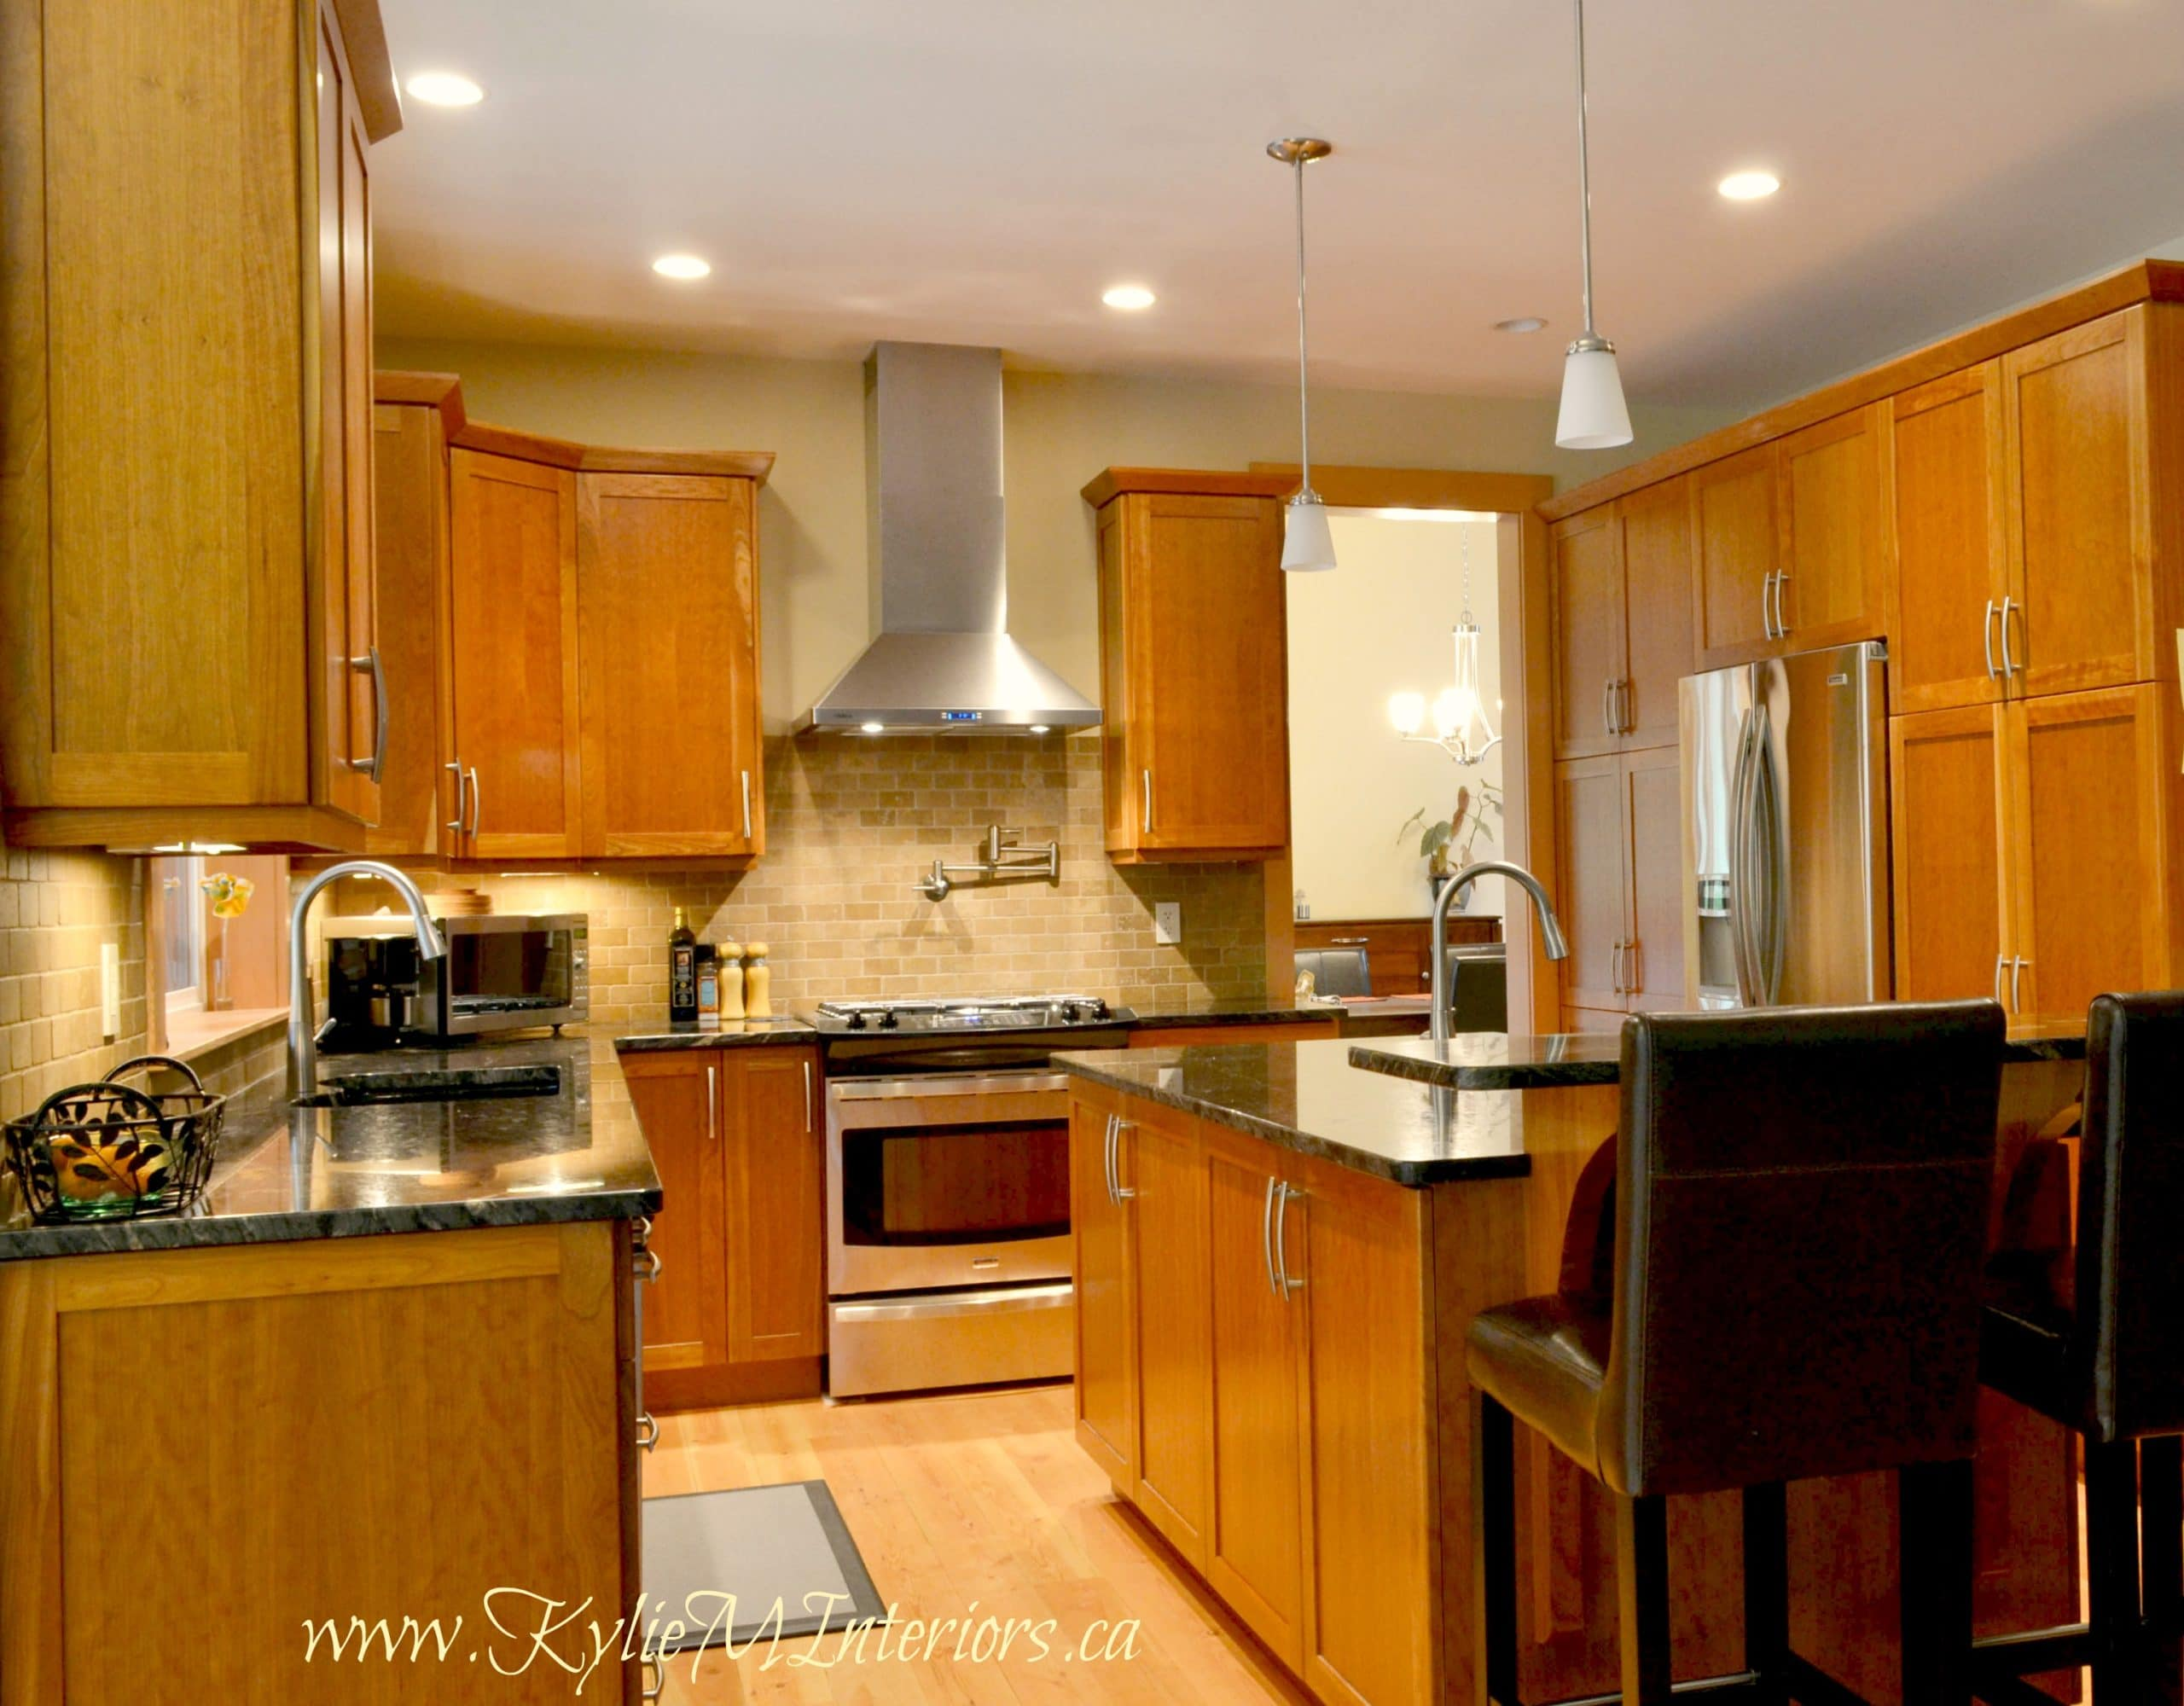 Kitchen Natural Fire Cabinets Natural Fir Wood Floors Black And Gold